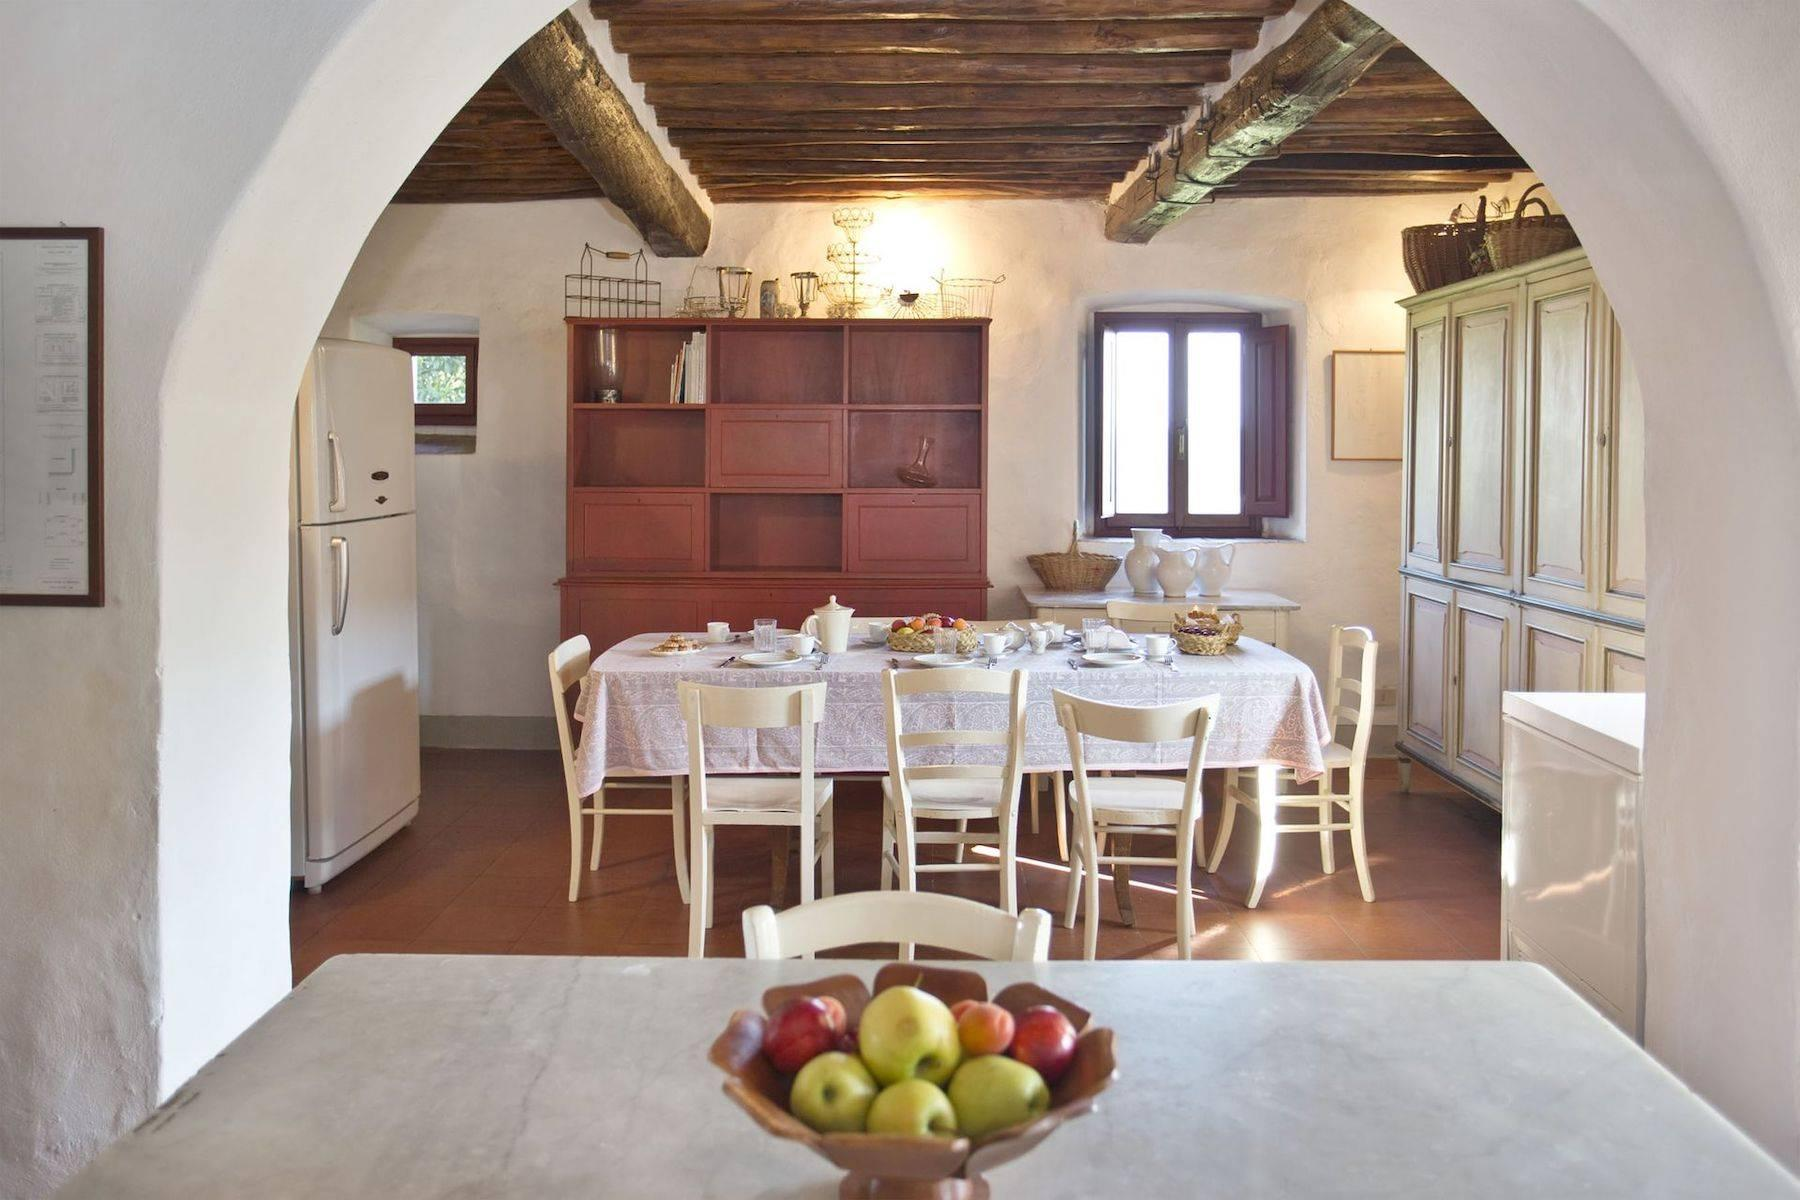 Beautiful charming countryside 6 bedroom villa with pool in Bagno a Ripoli - 10